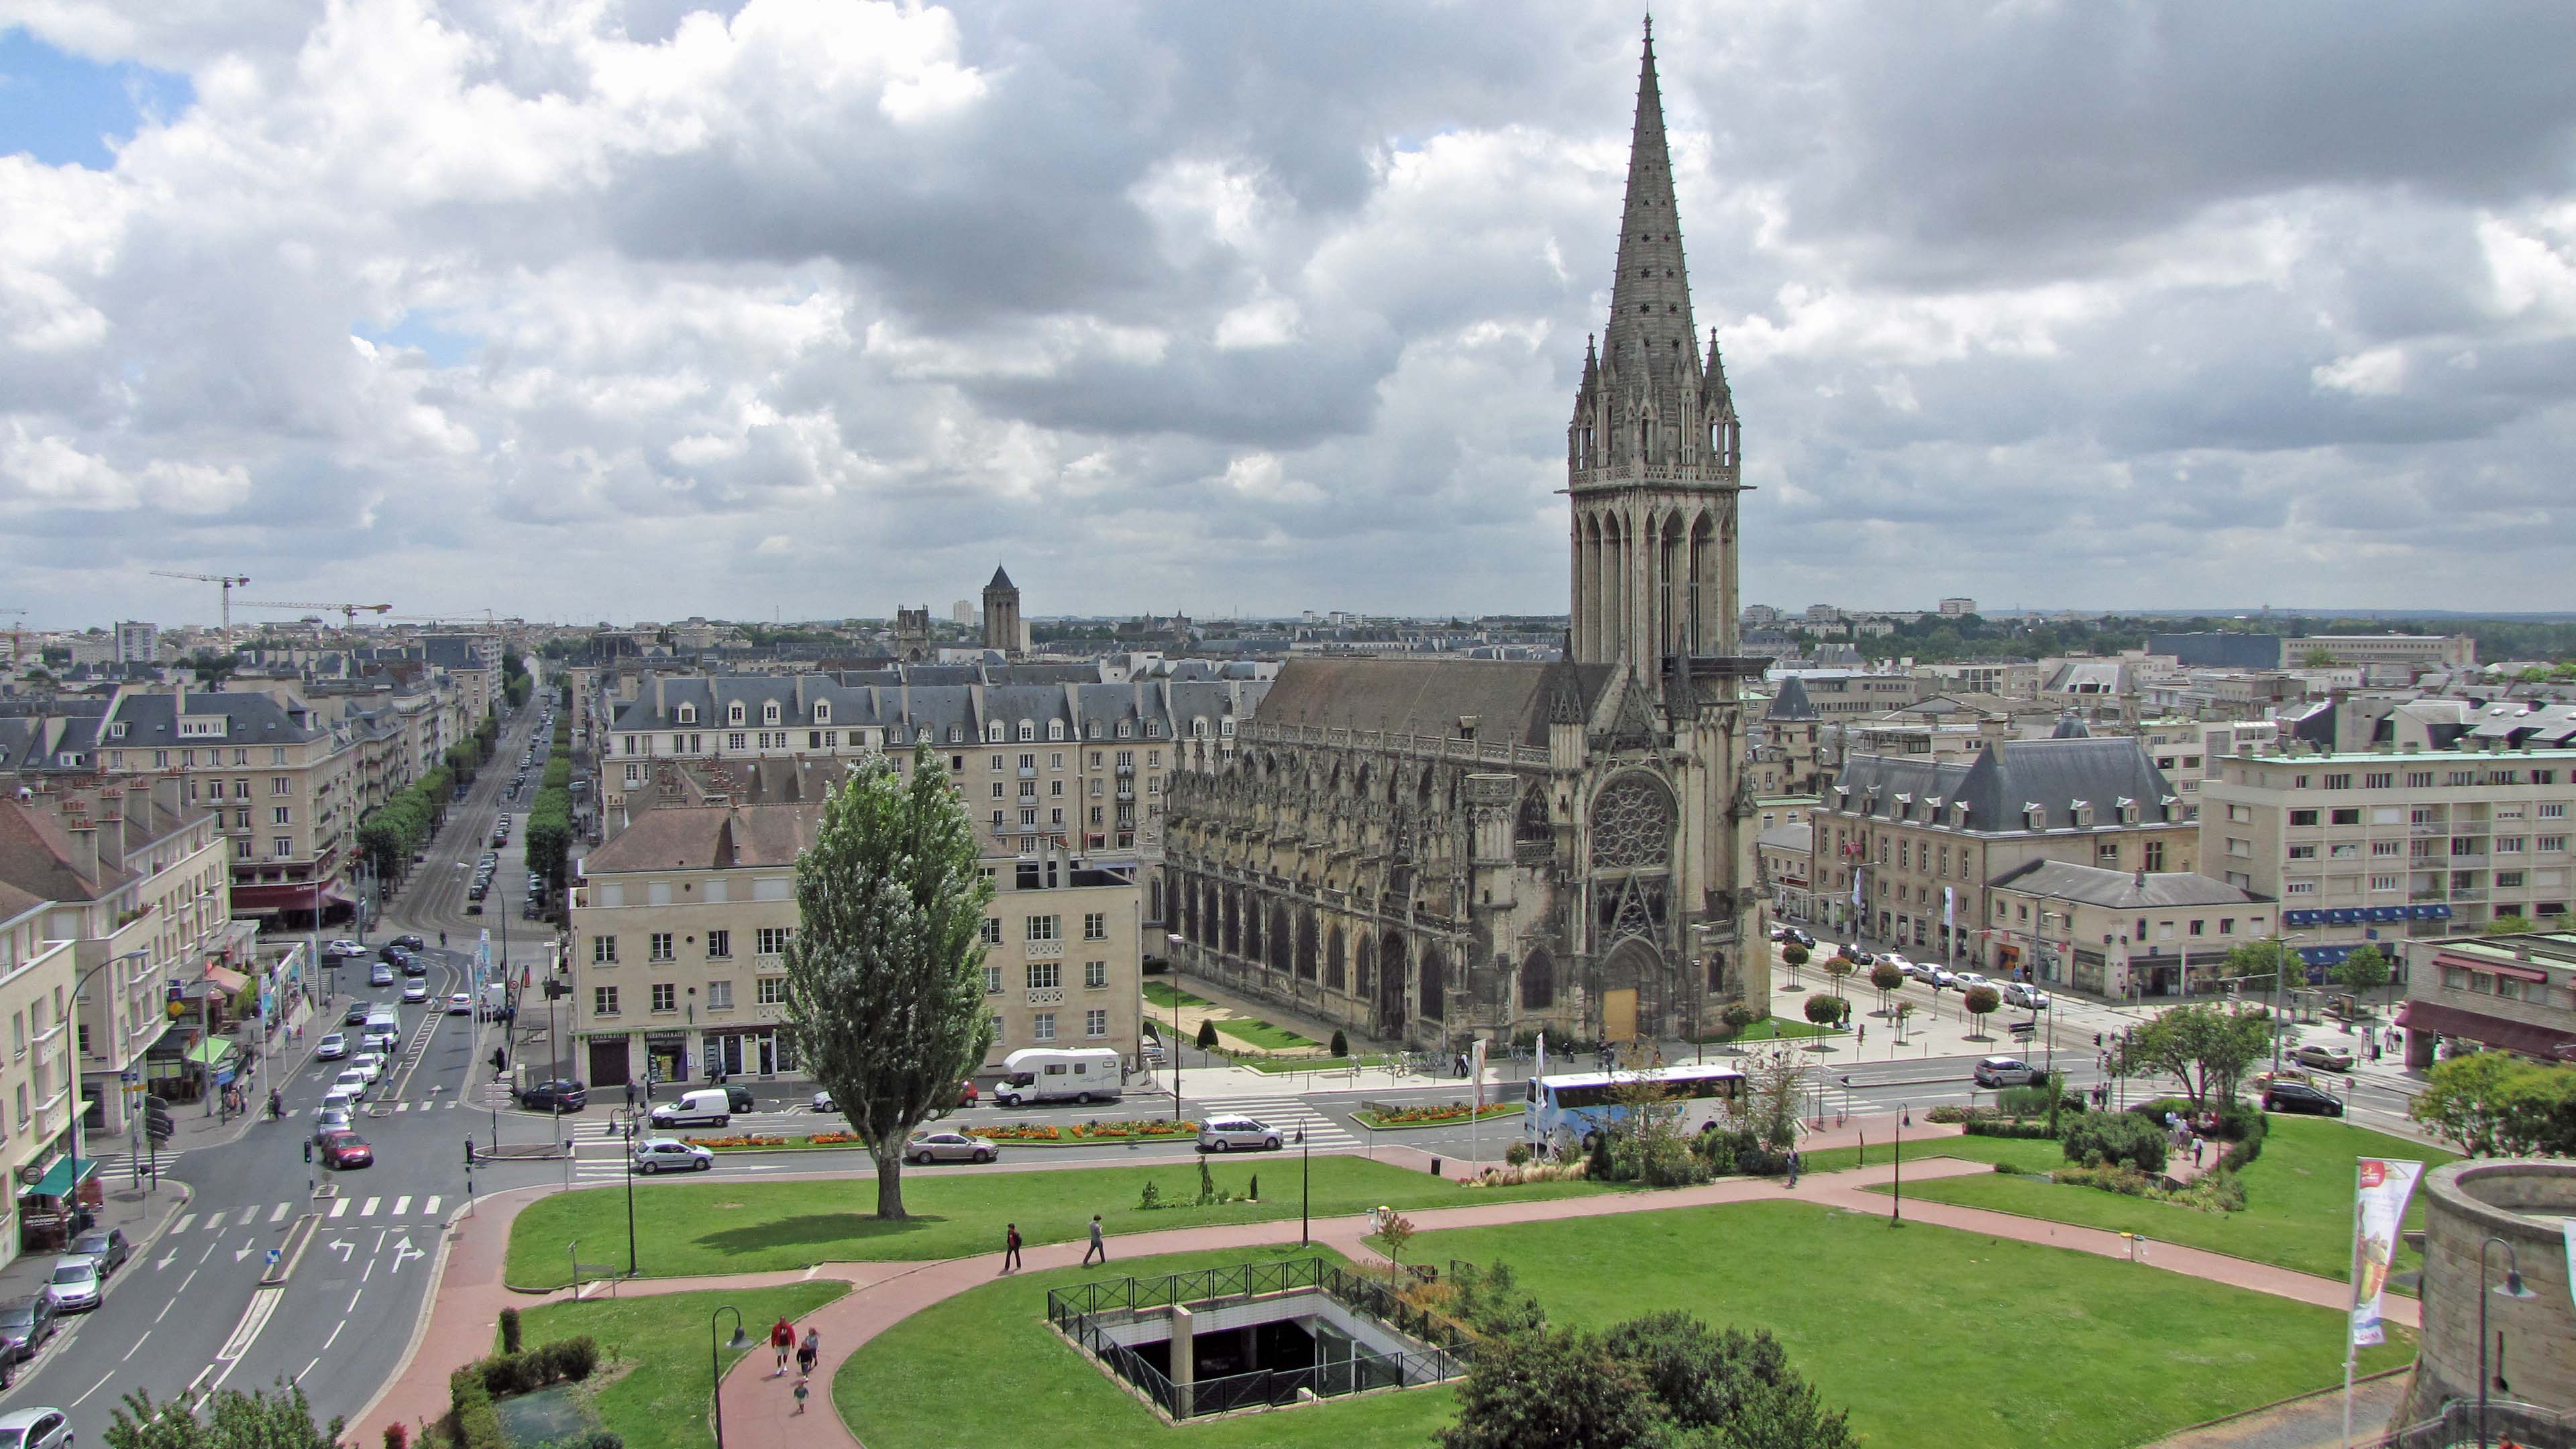 File:Église Saint-Pierre (Caen) (1).jpg - Wikimedia Commons